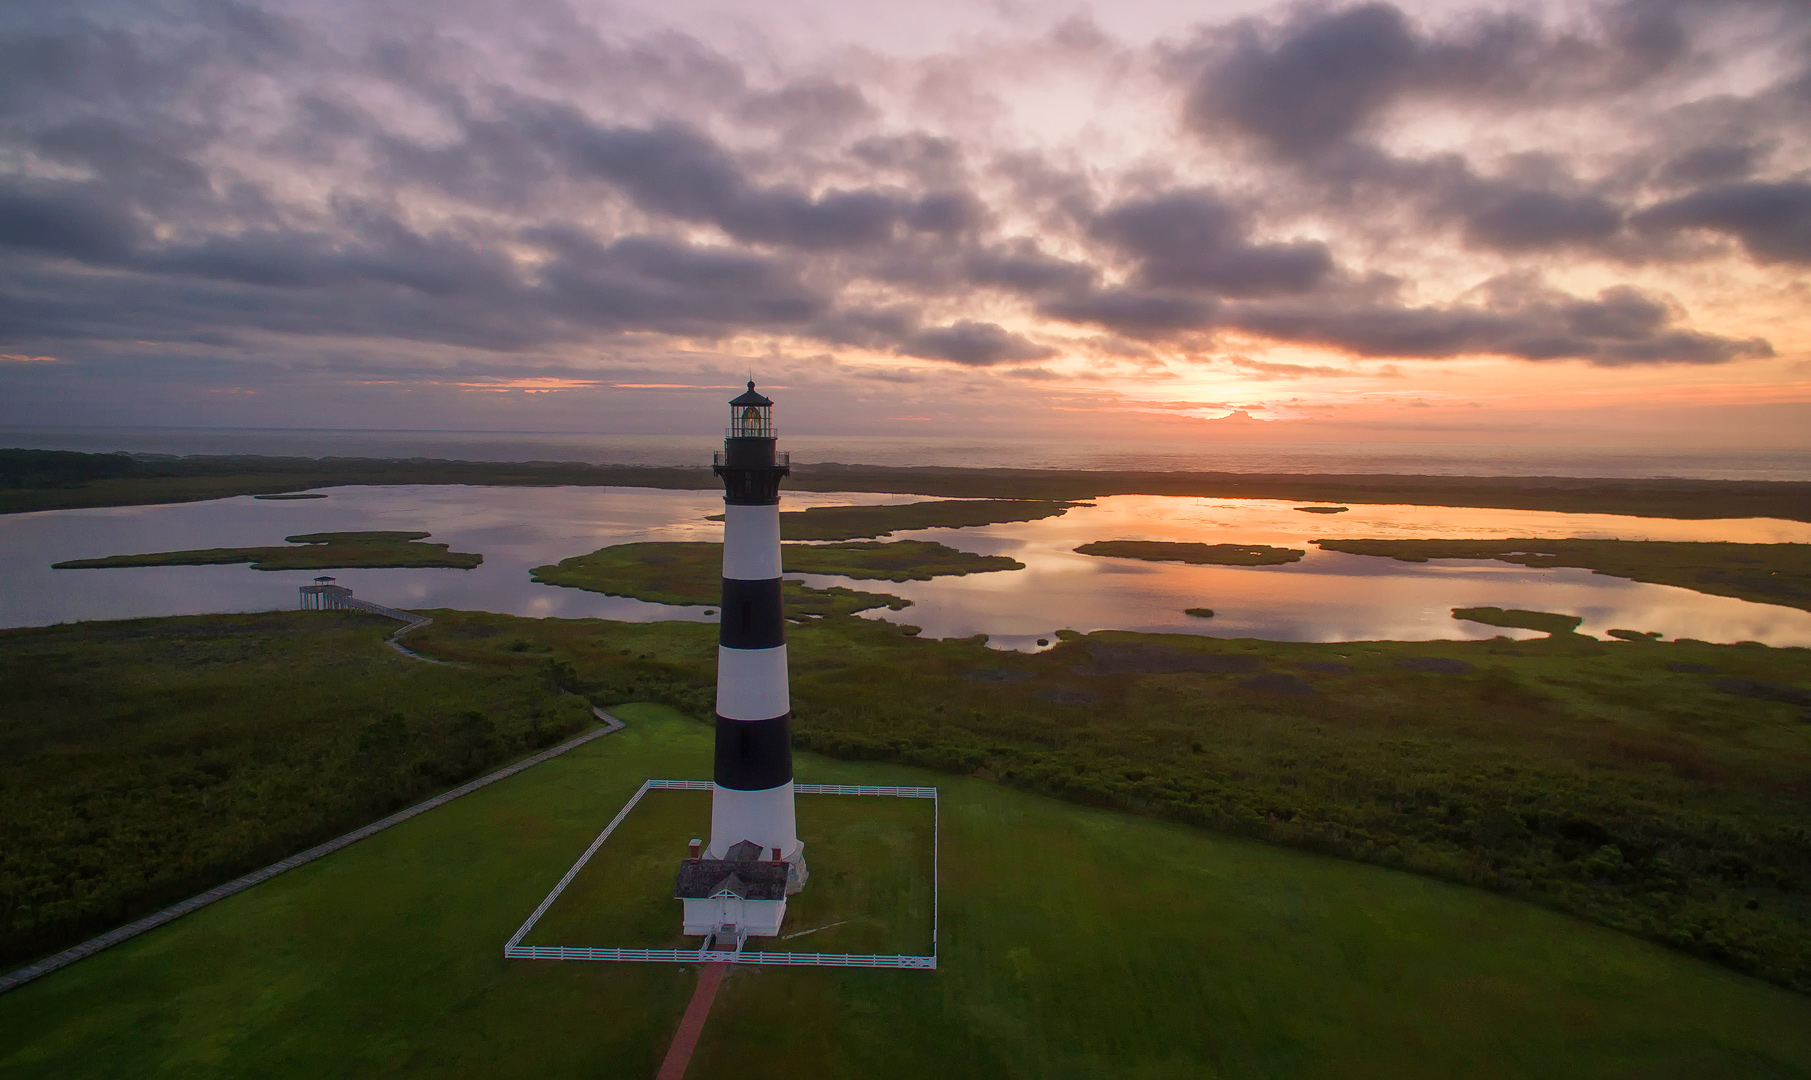 Rising Fire, Bodie Island Lighthouse, North Carolina, Atlantic, ocean, marsh, drone, aerial, photos, dji, phantom 3, bernard chen, timescapes, photo